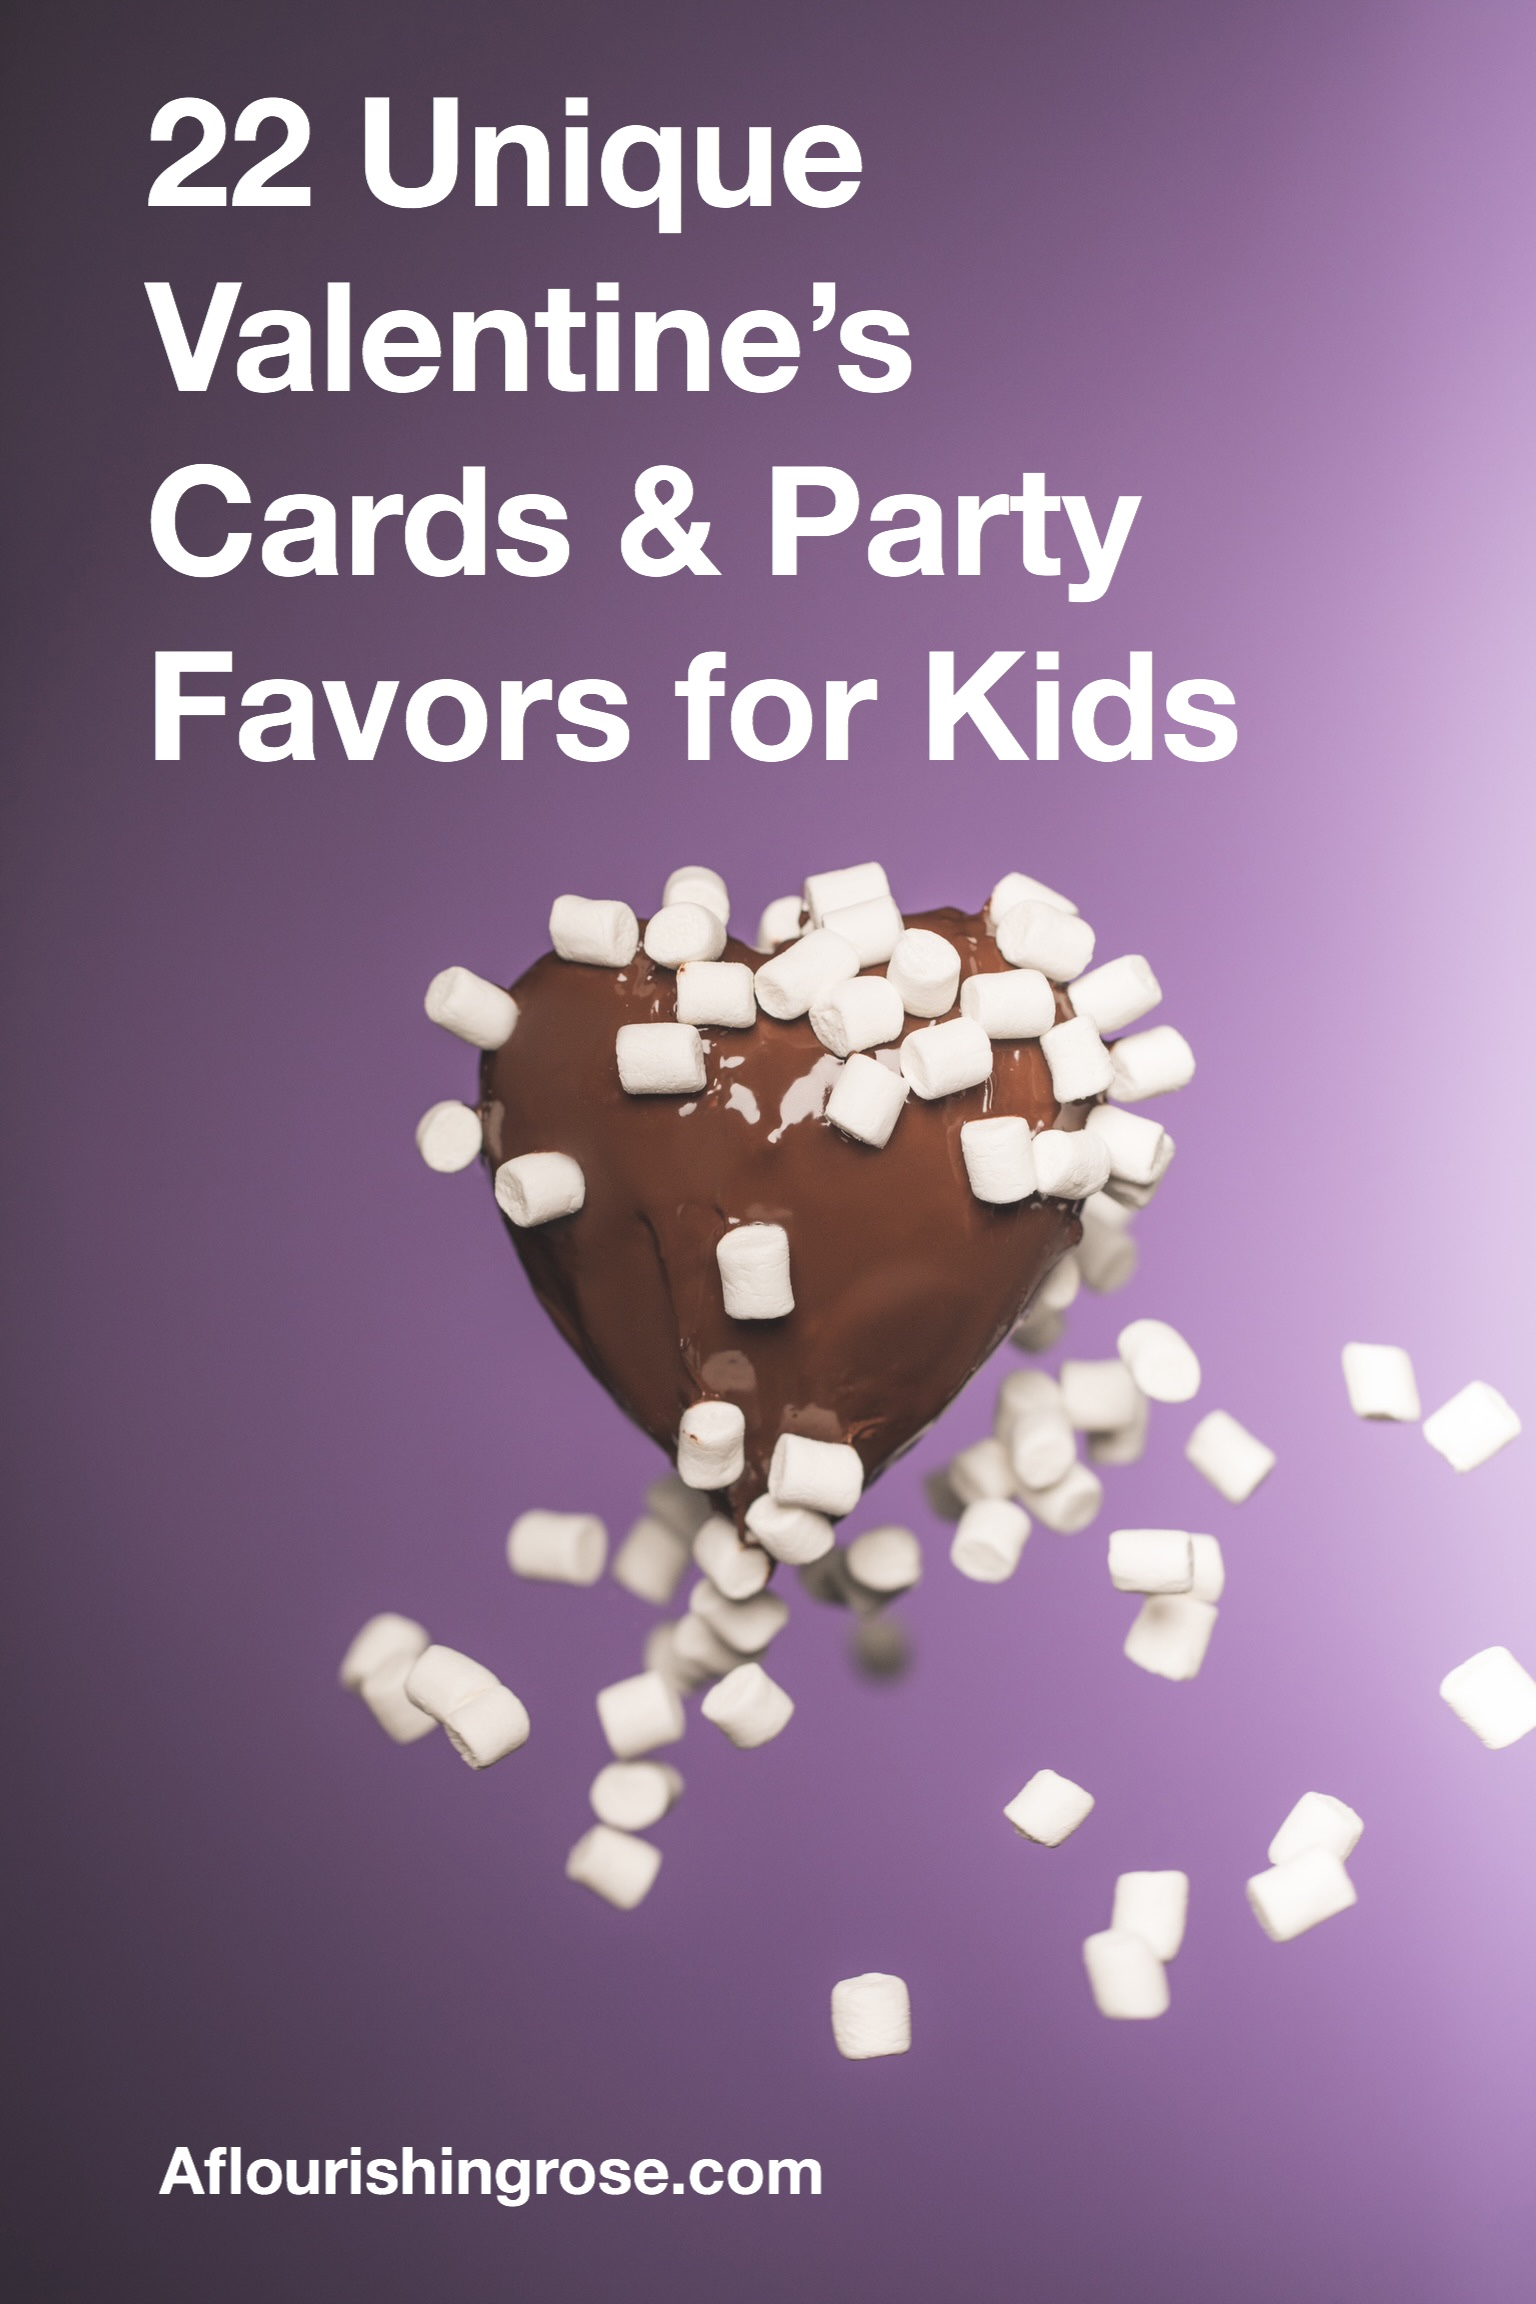 22 Unique Valentine's Cards and Party Favors for Kids